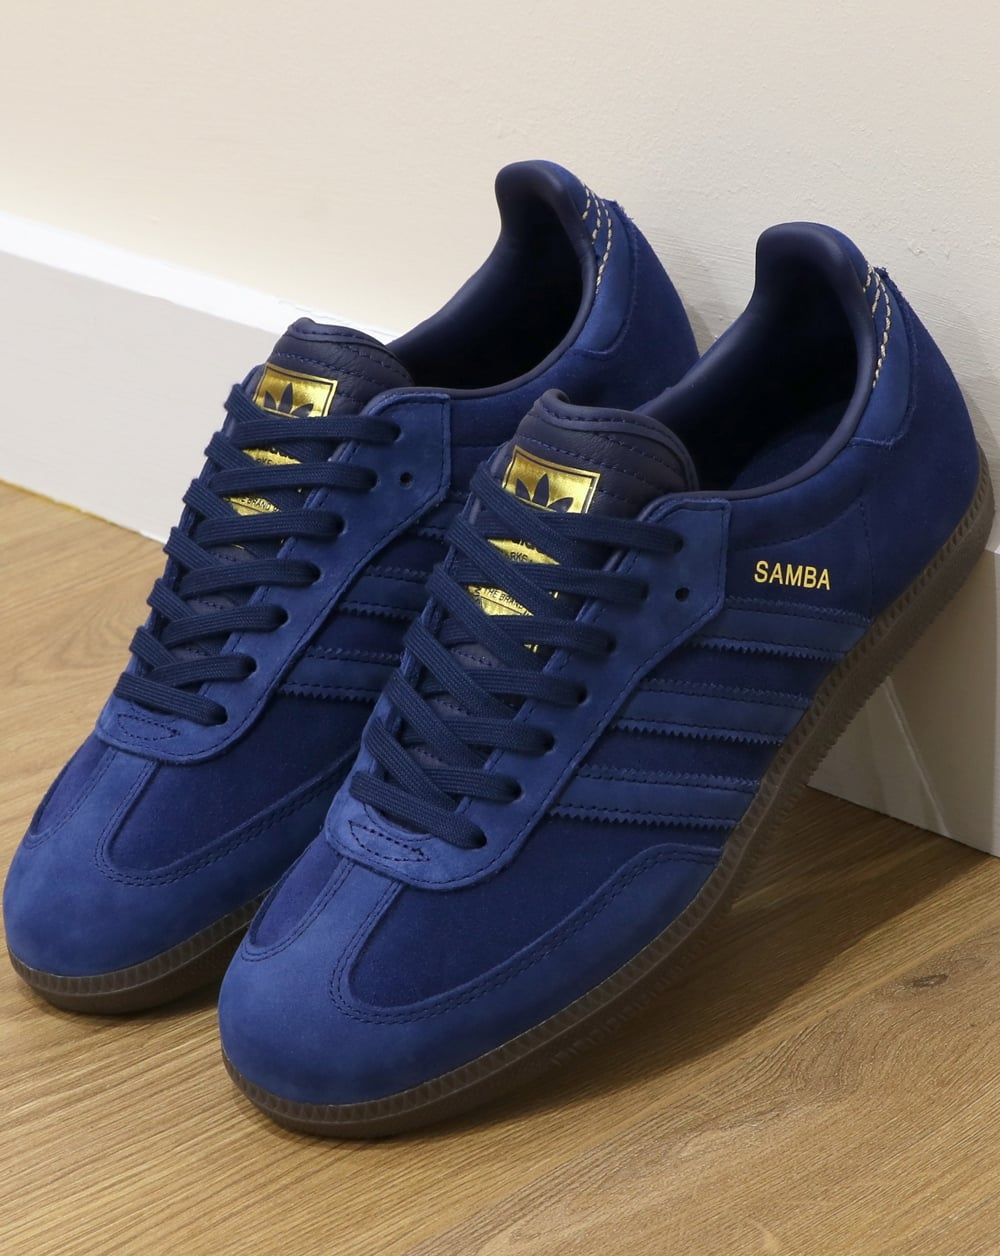 Adidas Samba Trainers Dark Blue